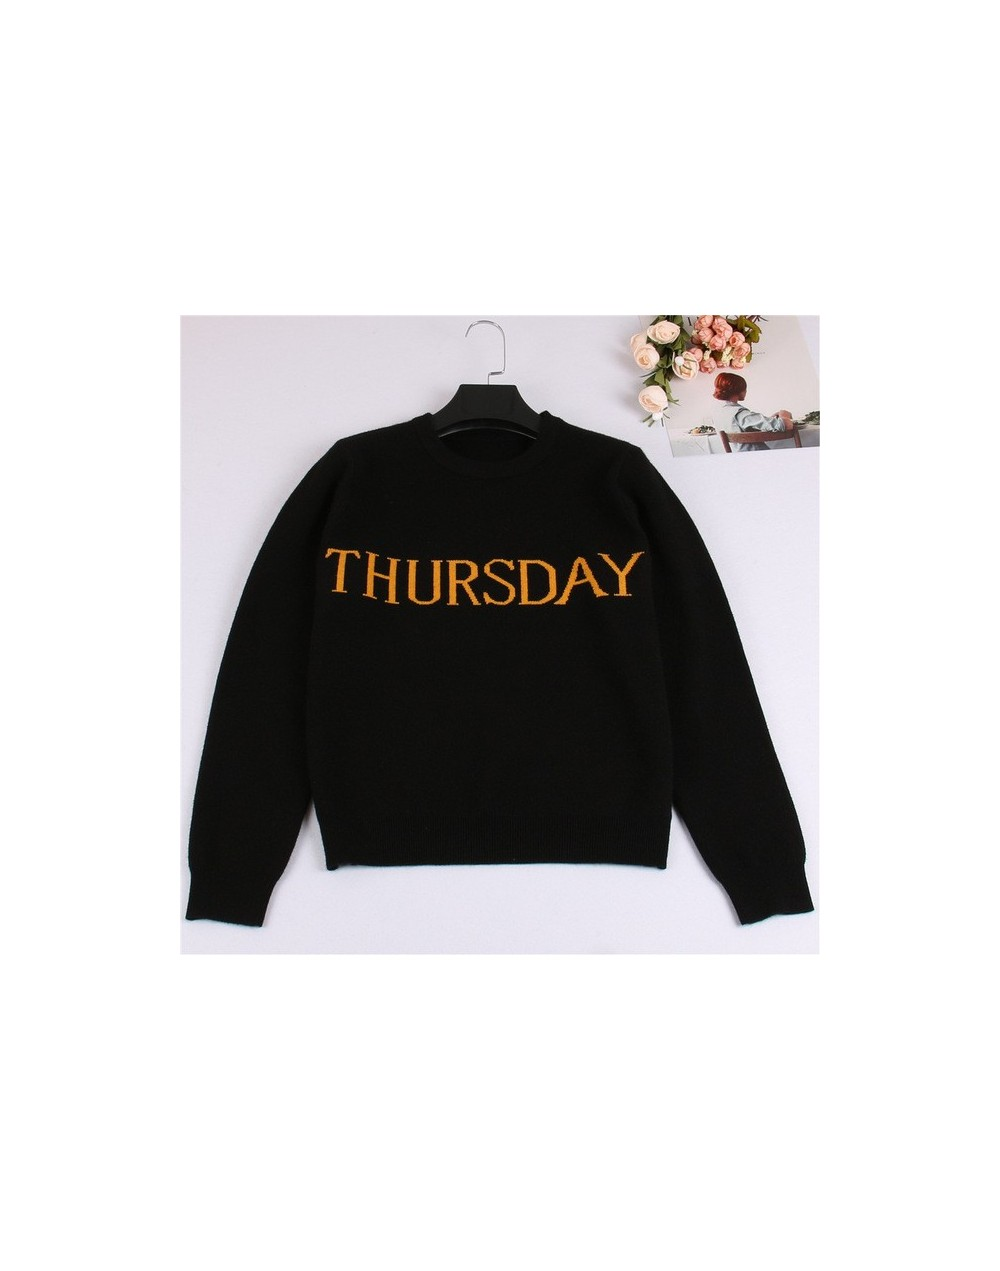 One Week Letters Fashion Women Sweater Black Knitting Pullover Sunday Monday Tuesday Wendnesday Thursday Friday Saturday Jum...